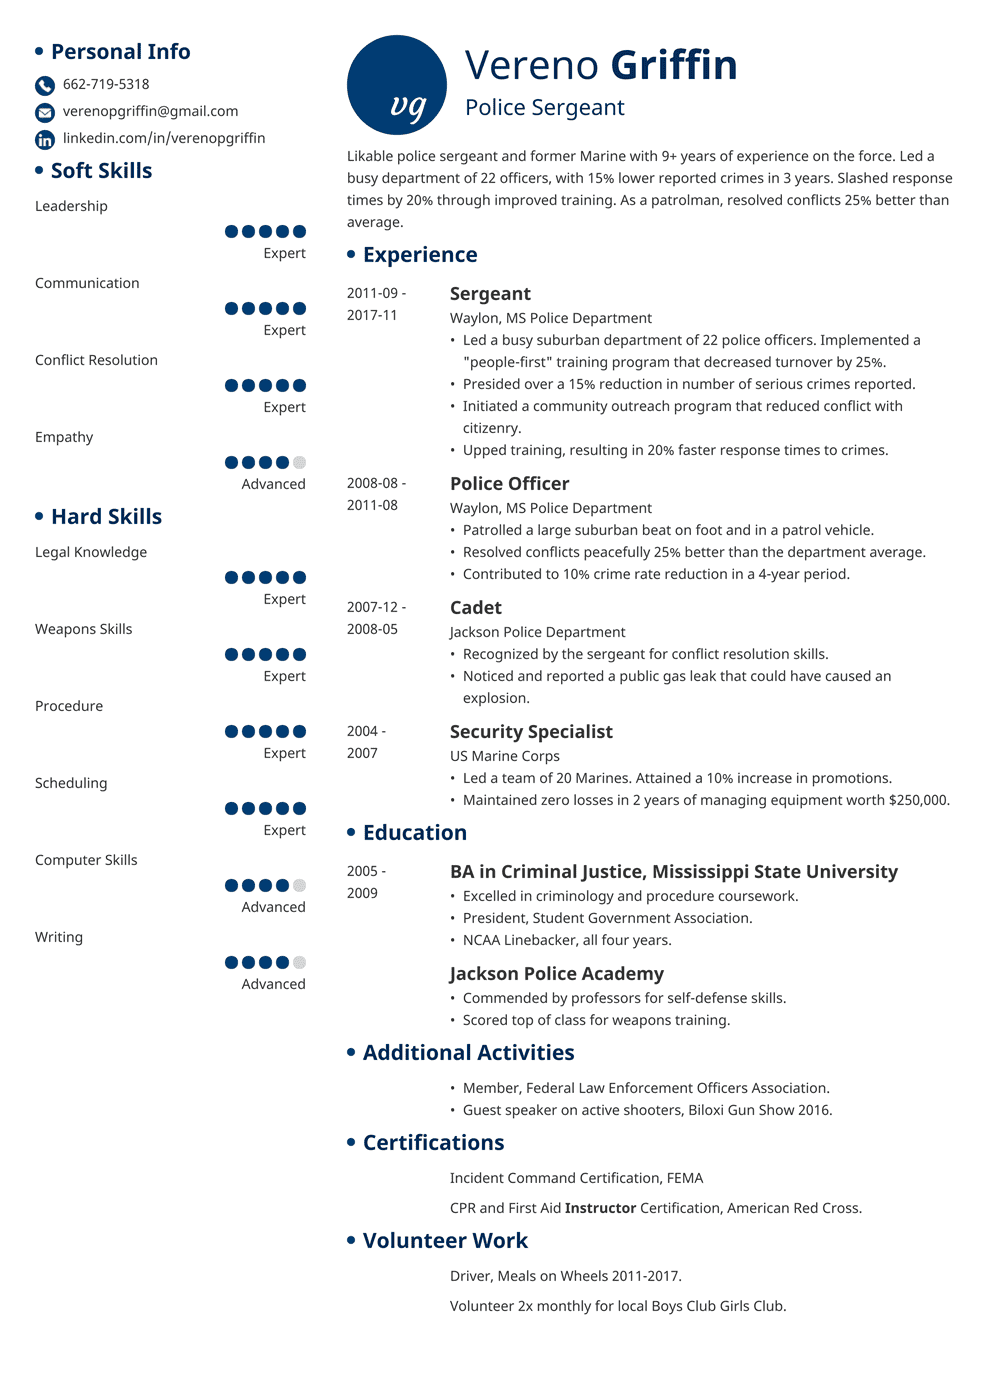 Police Officer Resume: Sample & Complete Guide [+20 Examples]